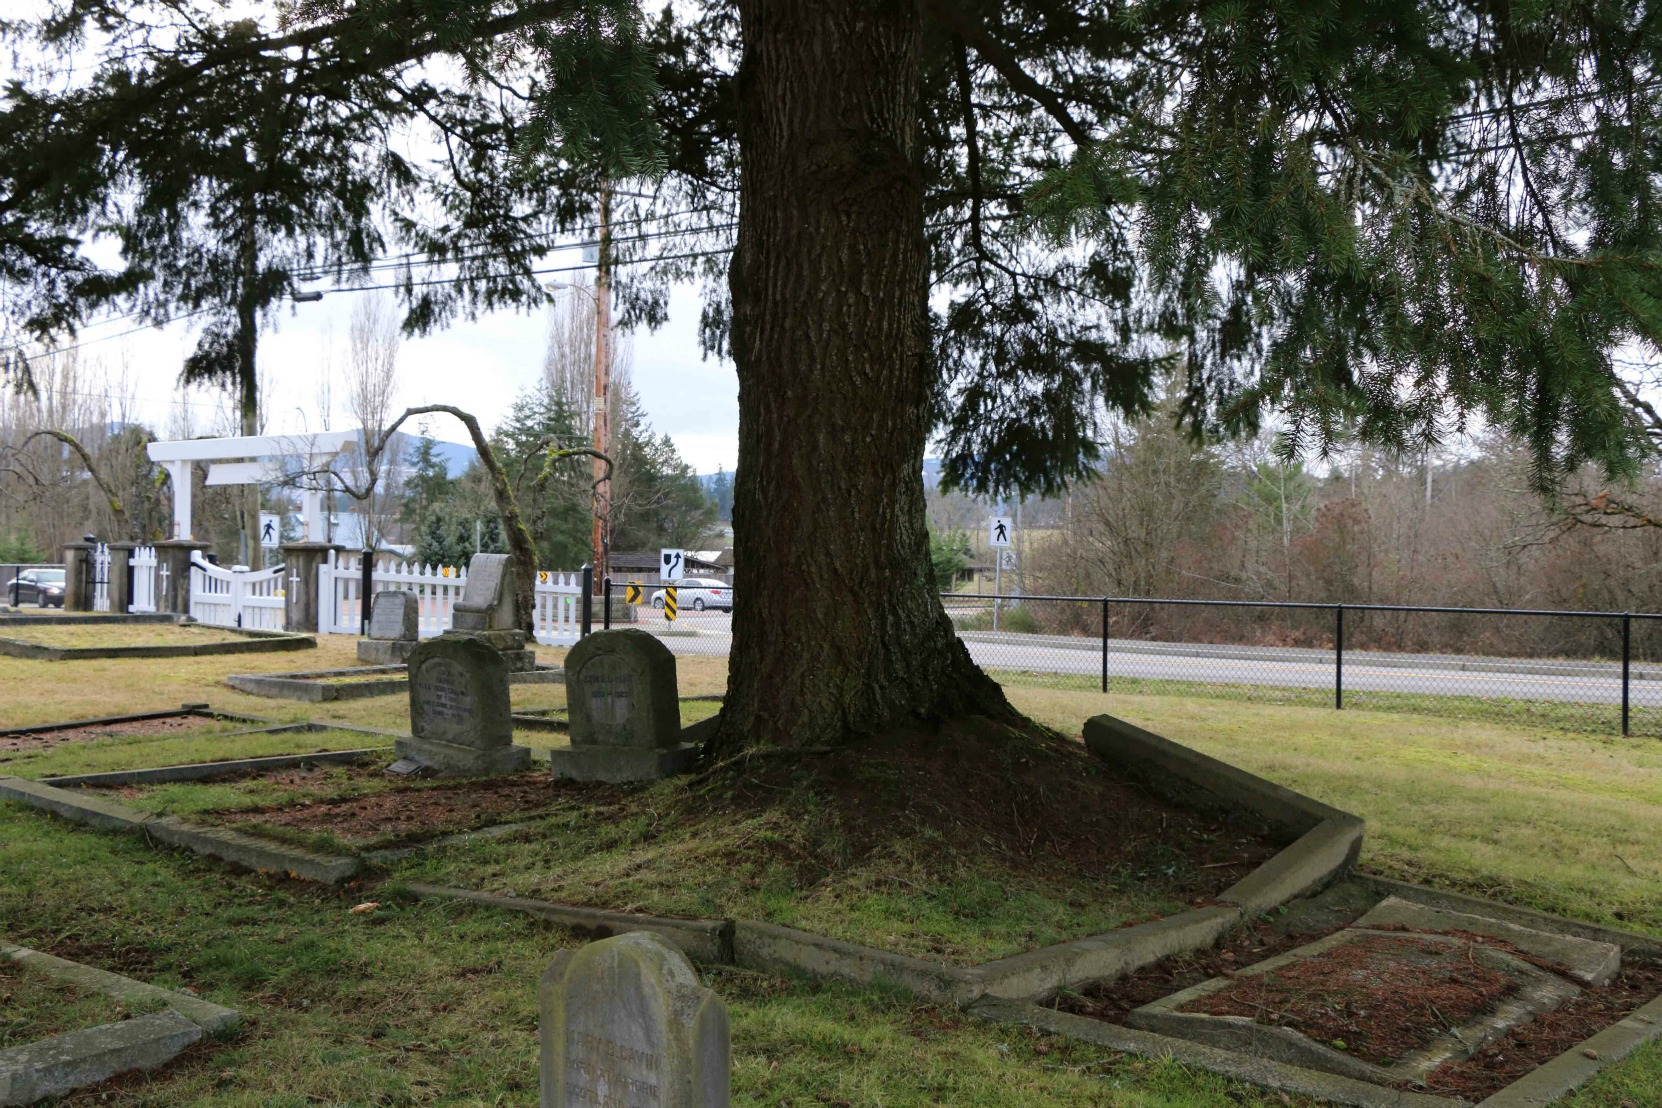 The grave of Thomas Van Norman and his wife in Mountain View Cemetery, North Cowichan. A large tree is growing in the Van Norman grave and has raised the concrete border around the grave. (photo by Temple Lodge No. 33 Historian)